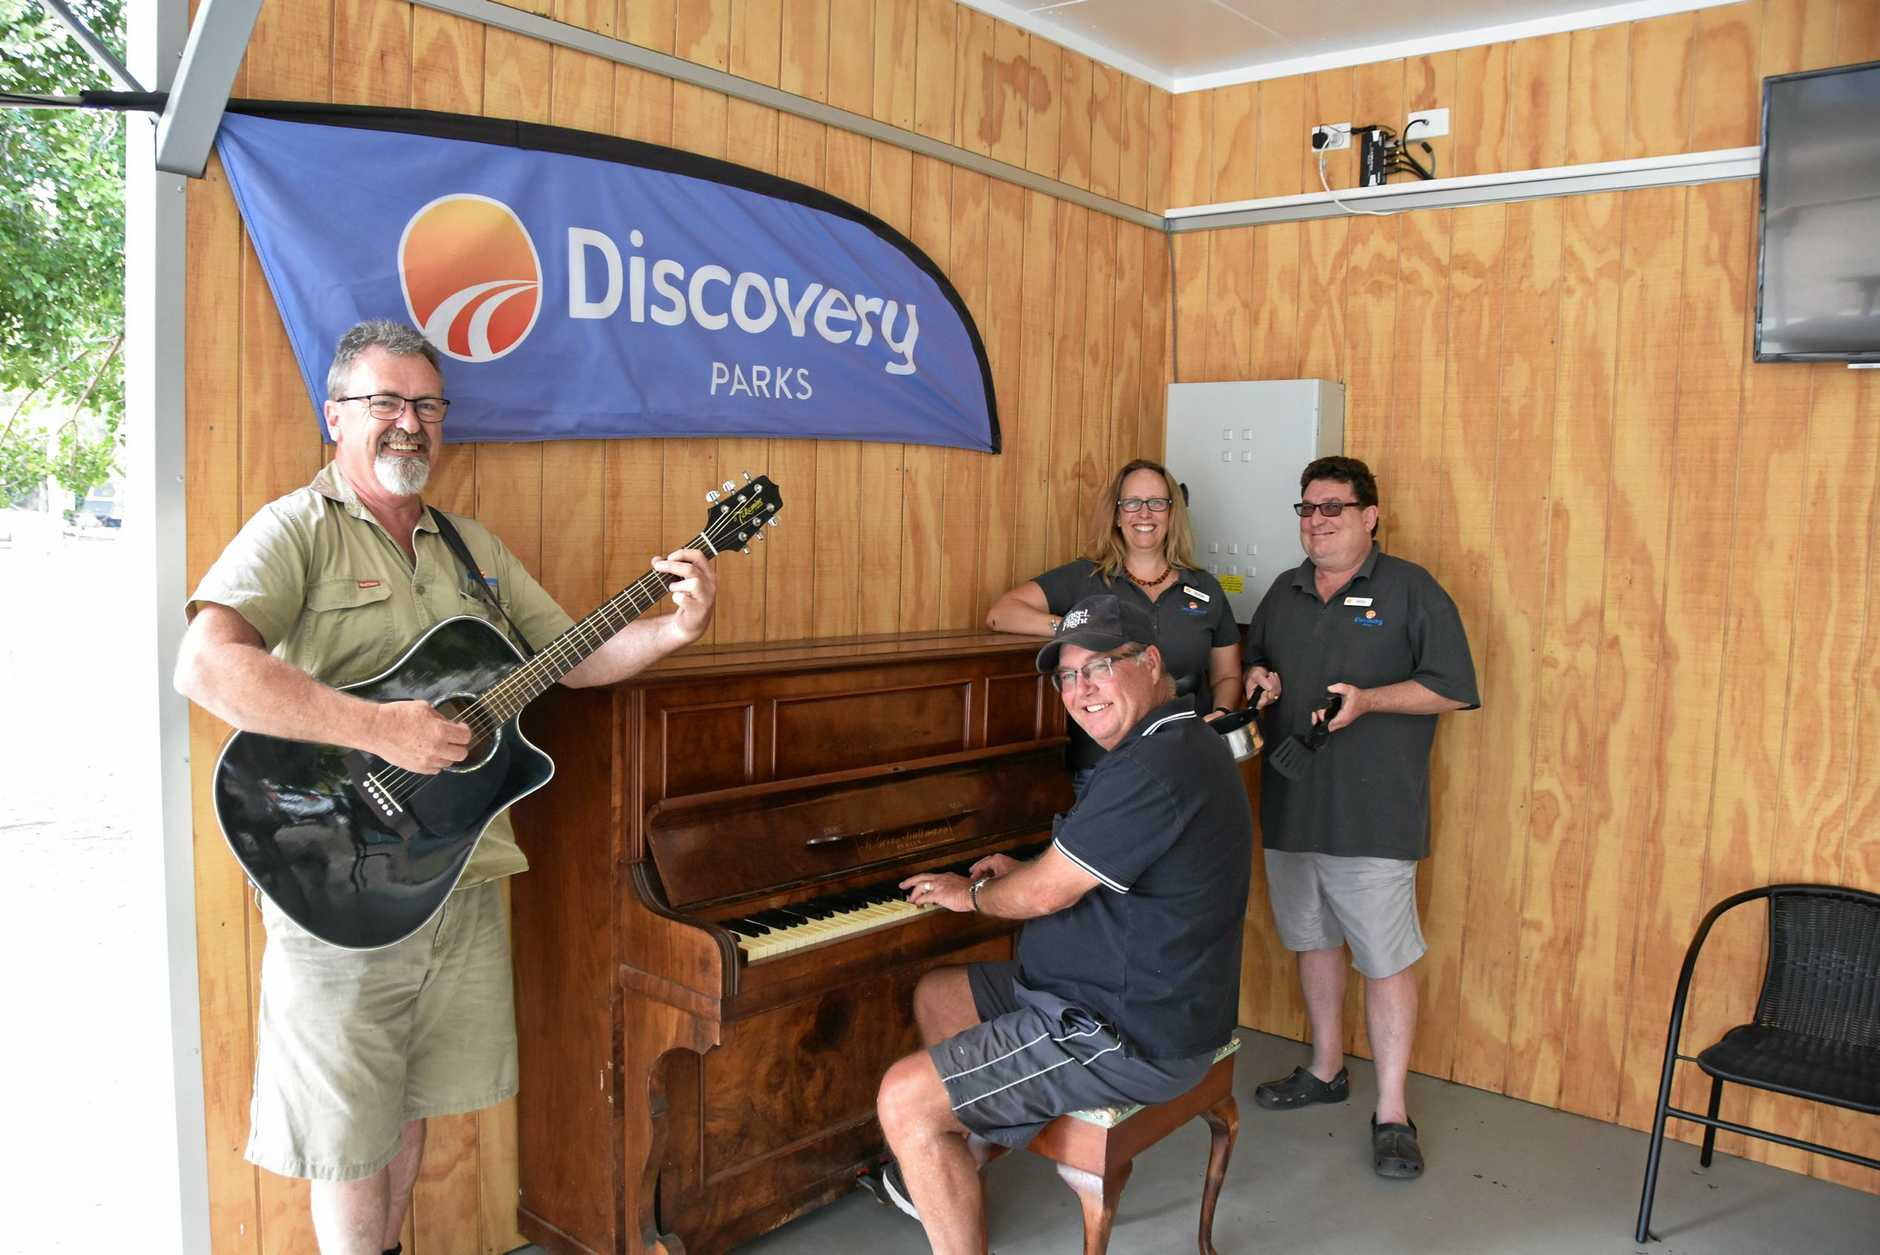 Park Fun: Discovery Holiday Park staff Jim Jones, Geoff Batchelor, Bobbi McPaul and Andy Forsyth were fine tuning their musical and culinary talents for the mid week entertainment.